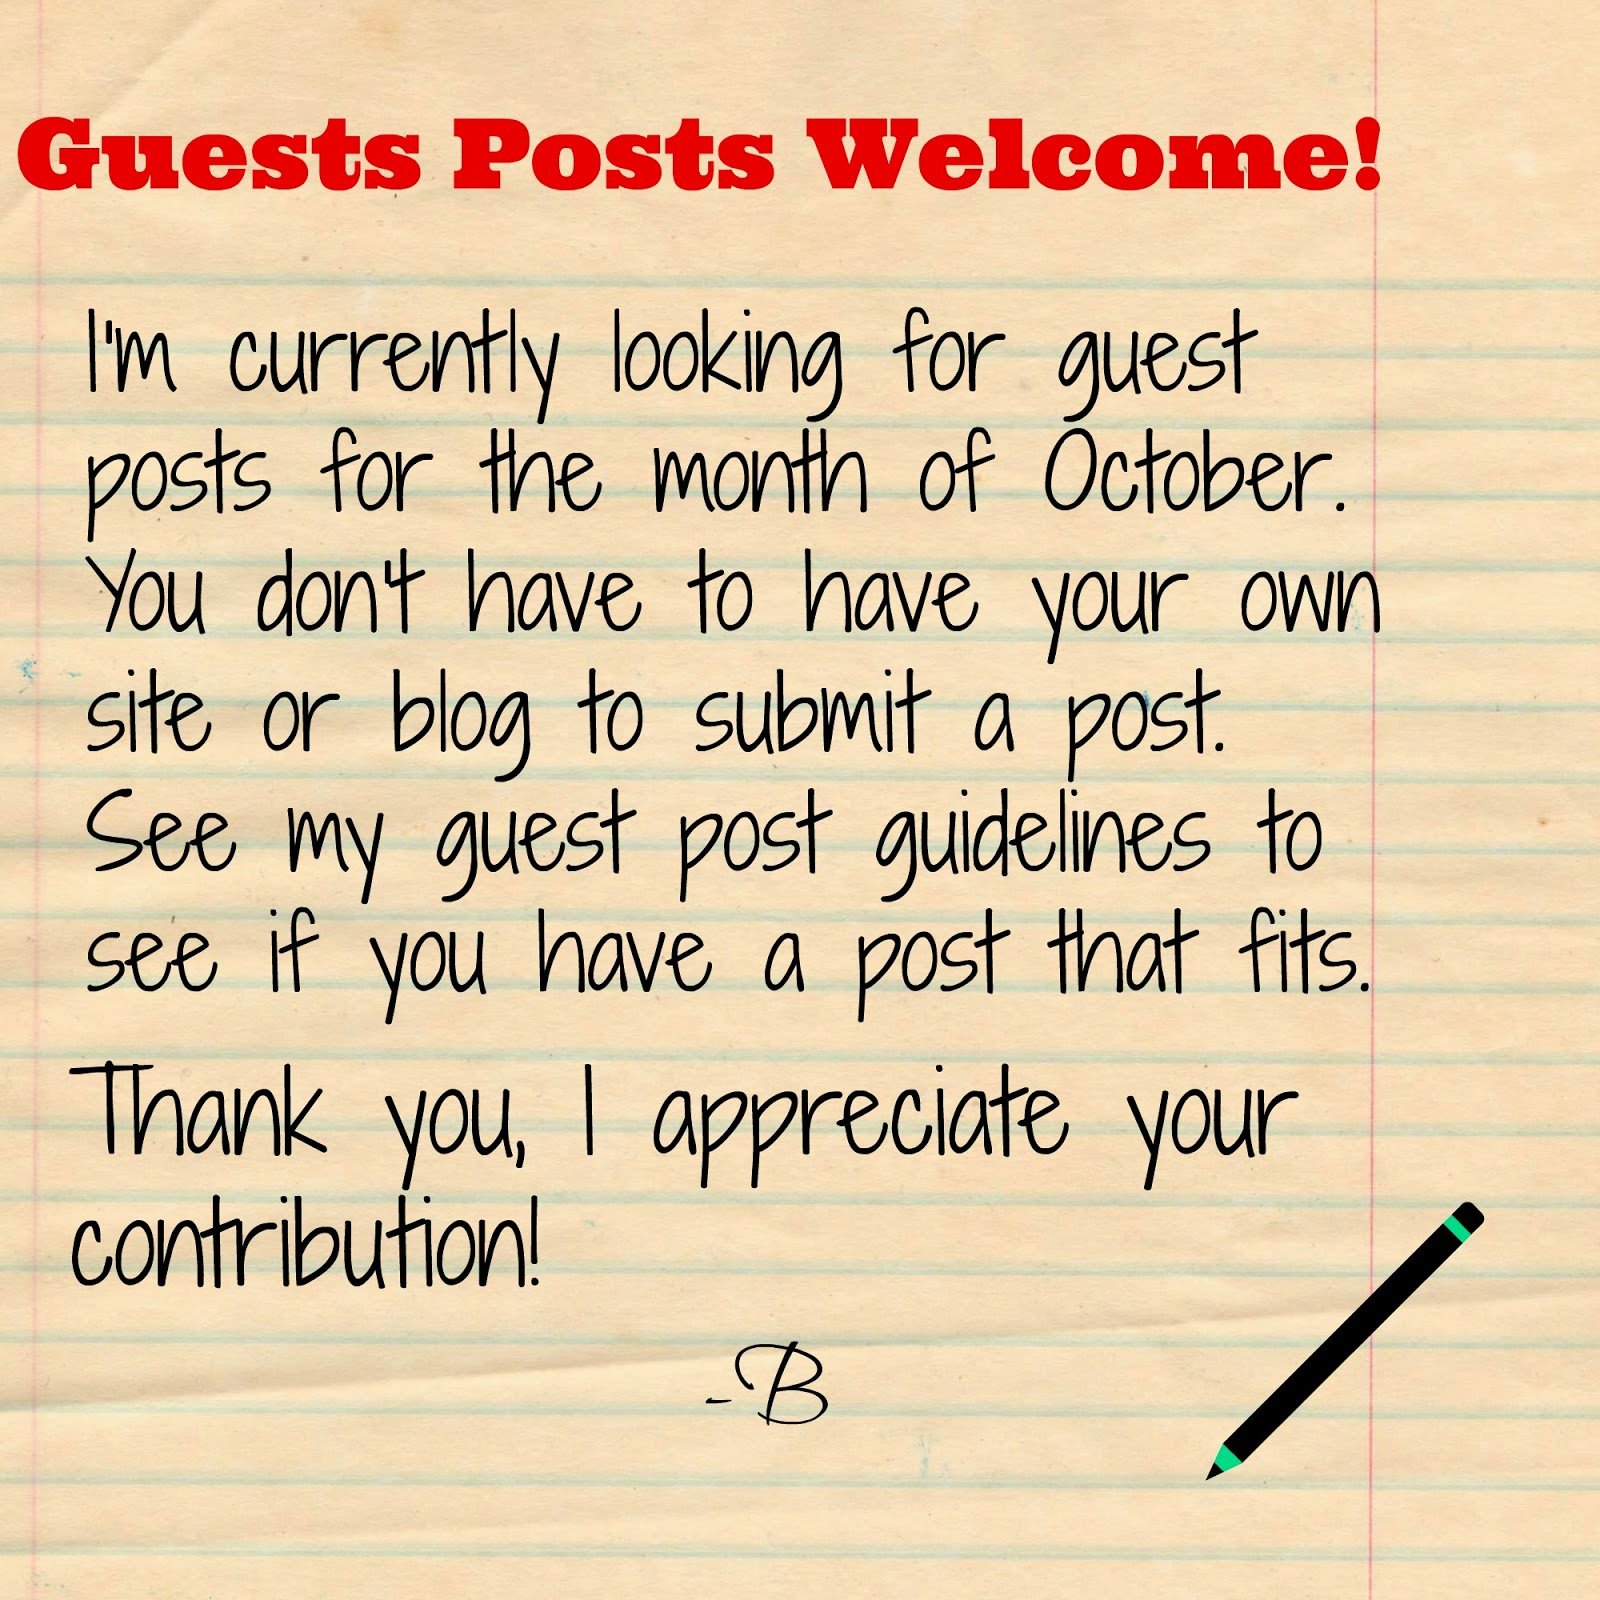 http://b-is4.blogspot.com/p/guest-posts-welcome.html